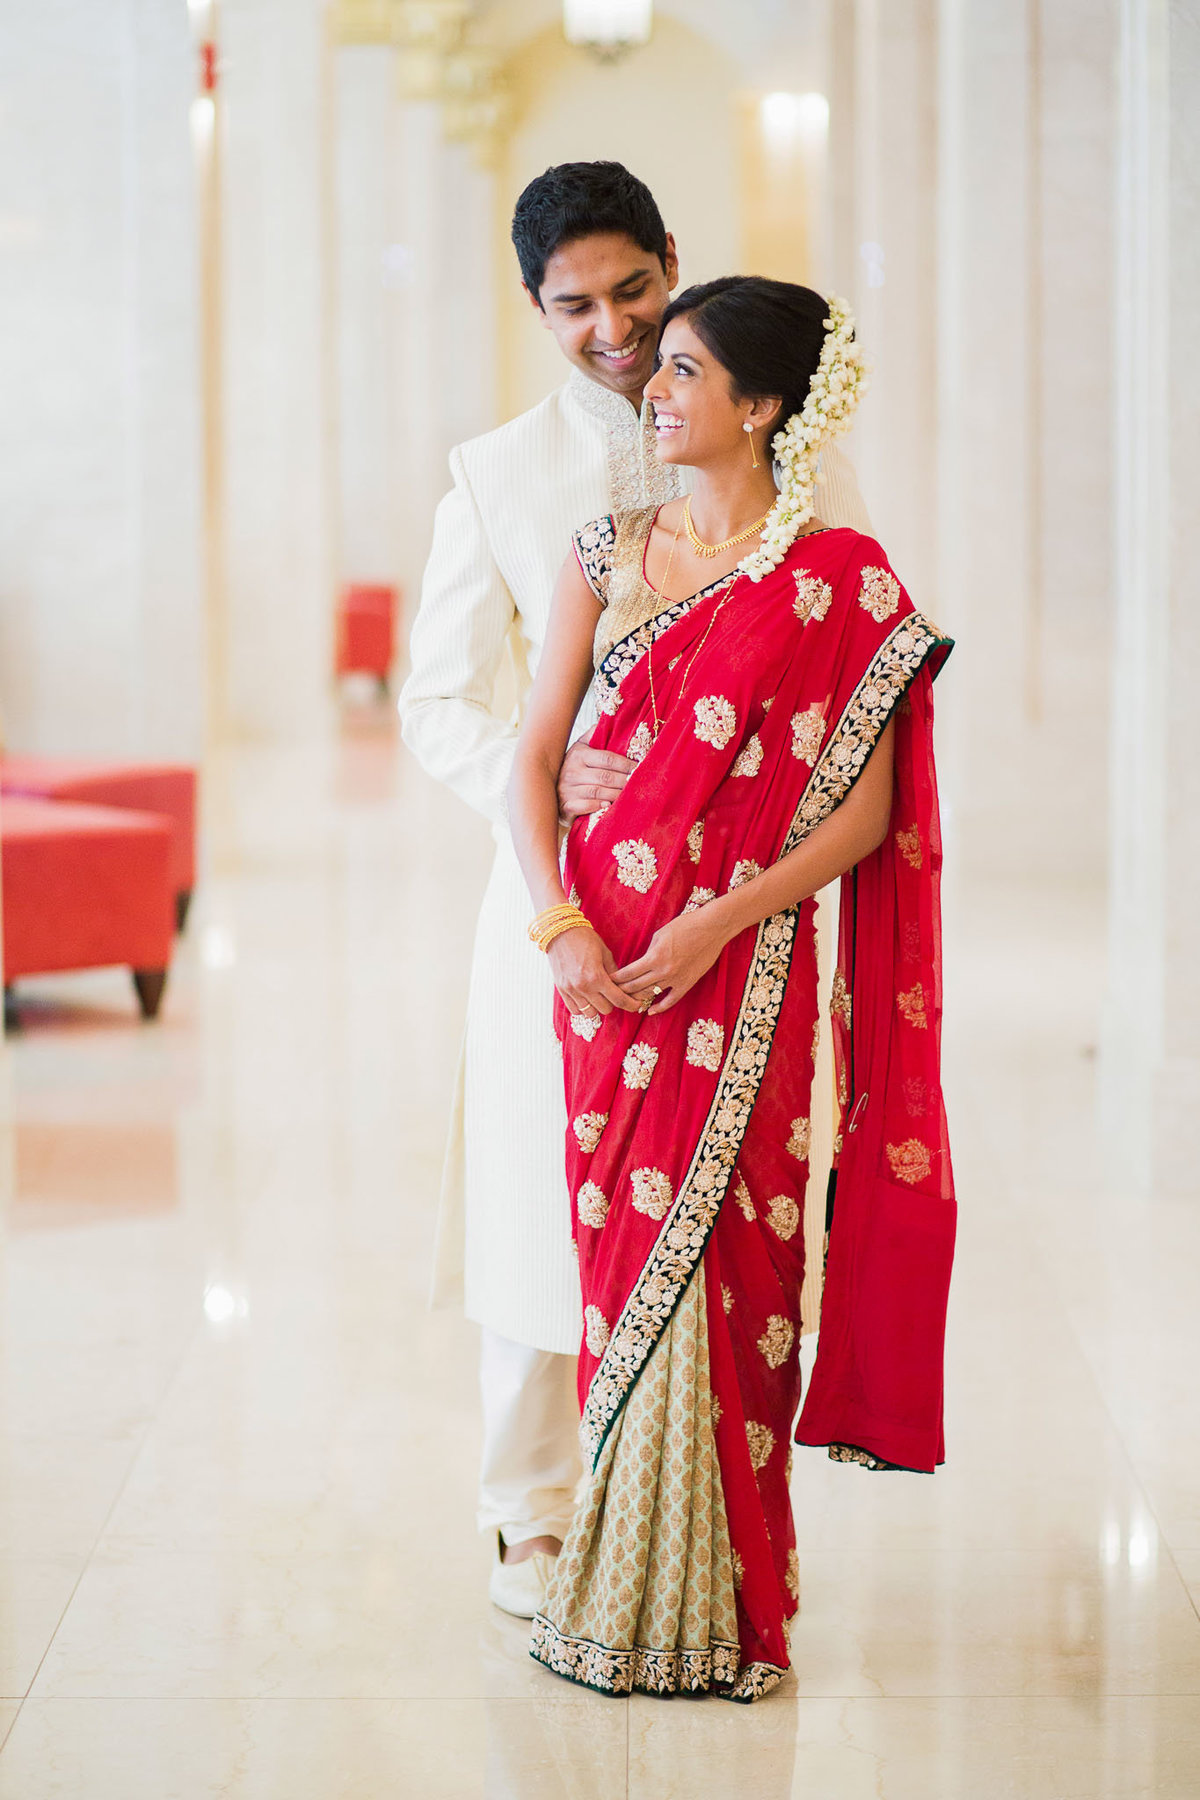 Harold-Washington-Library-South-Asian-Wedding-032